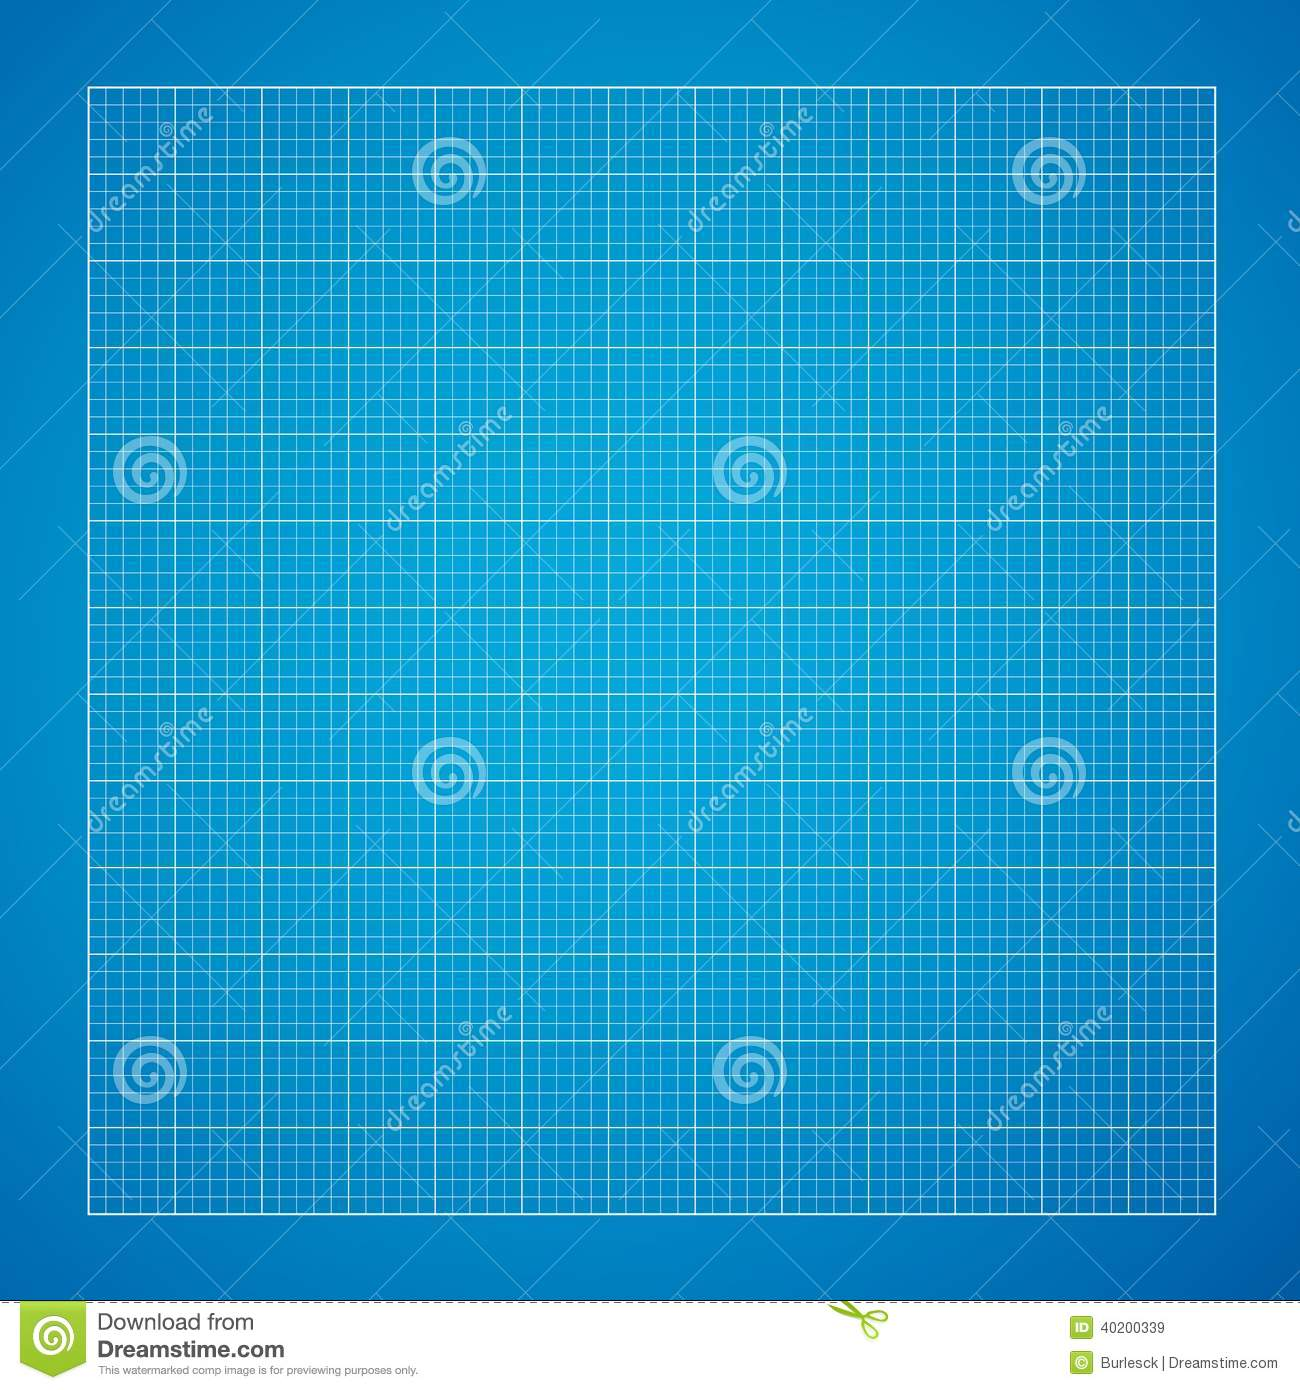 Blueprint Background Stock Vector - Image: 40200339